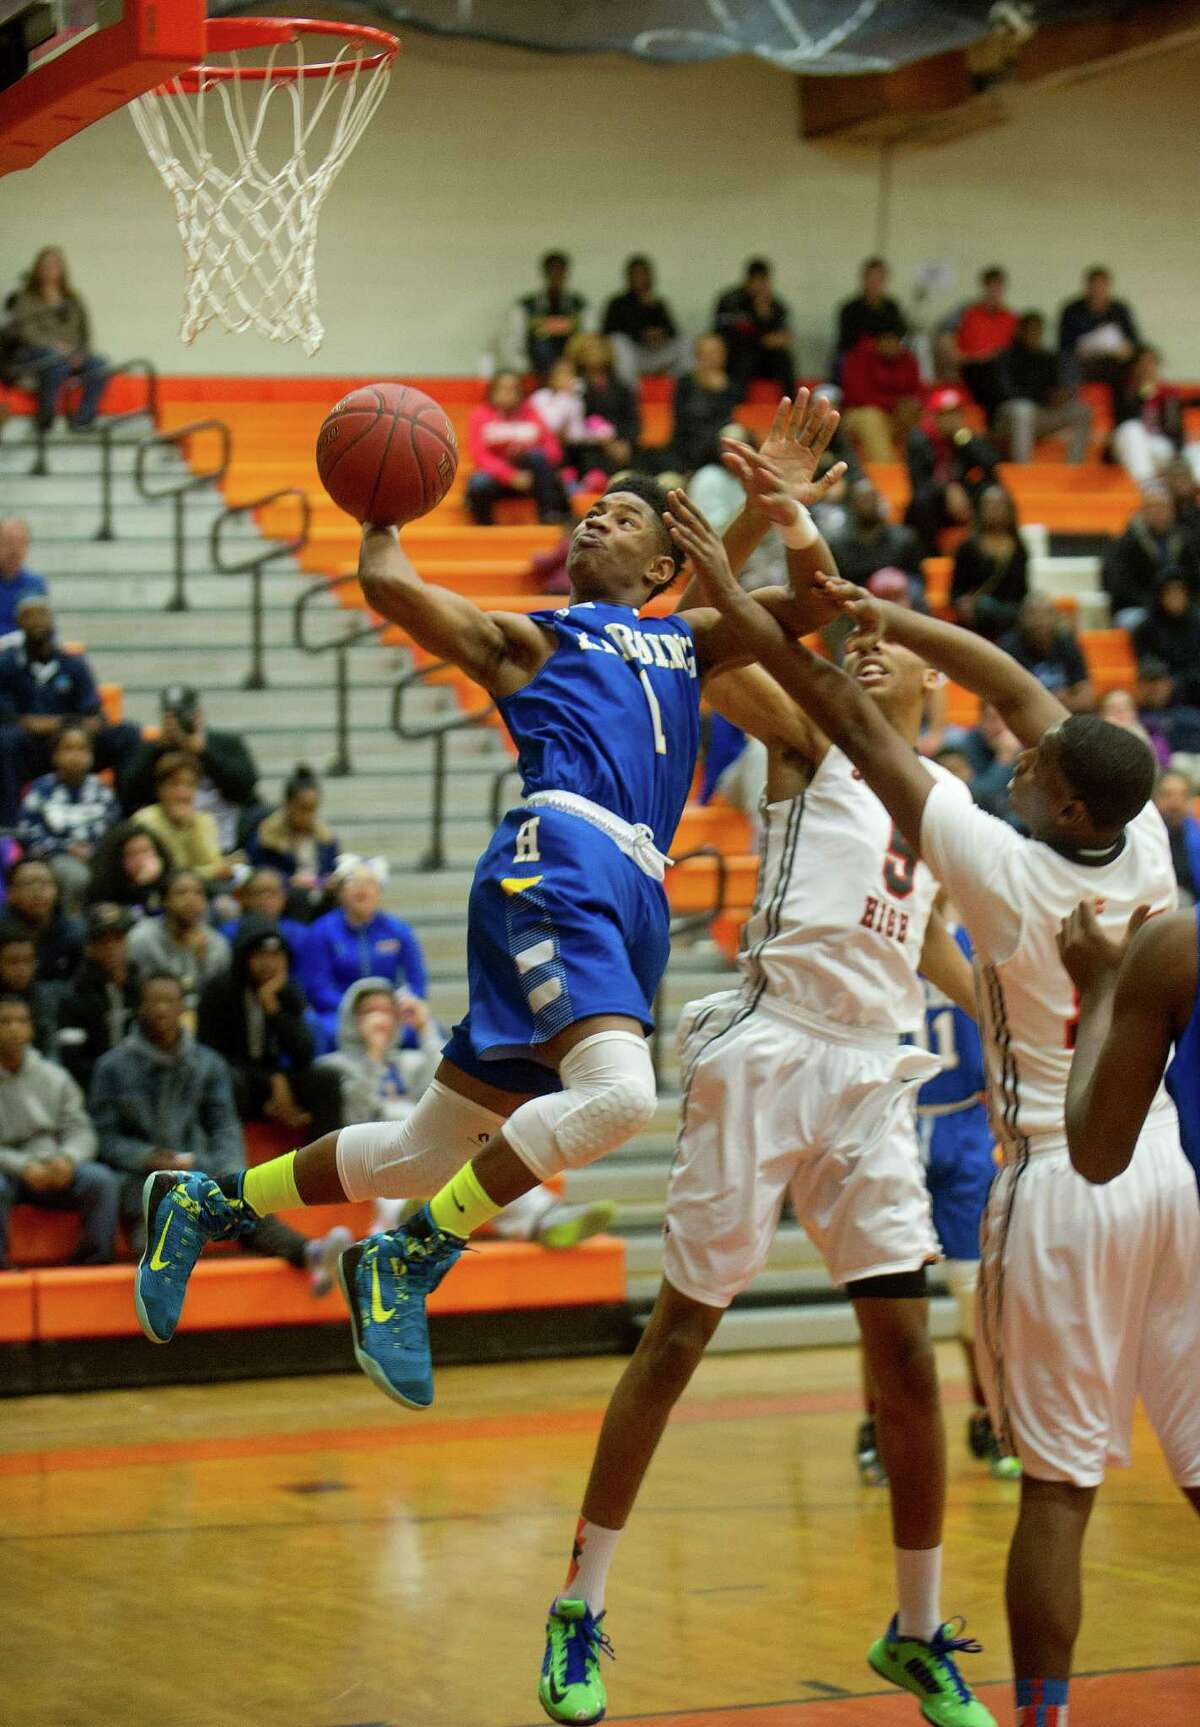 Harding's T.J. Killings jumps to take a shot during Friday's basketball game at Stamford High School on February 13, 2015. After the shot, Killings fell and injured his shoulder.